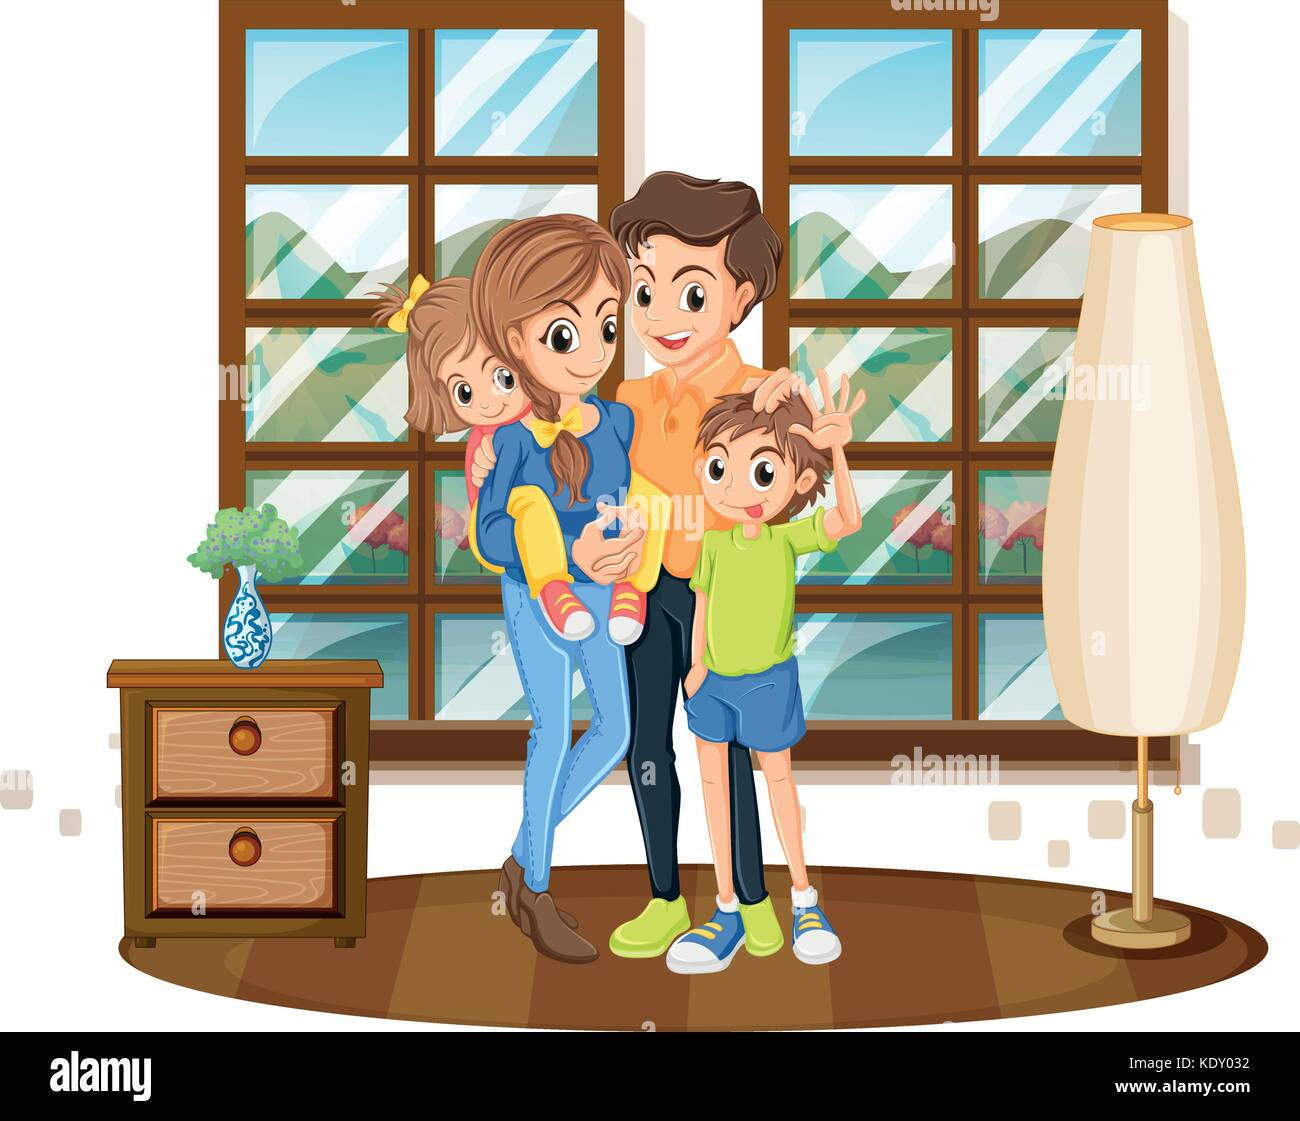 Family members in the house illustration - Stock Vector